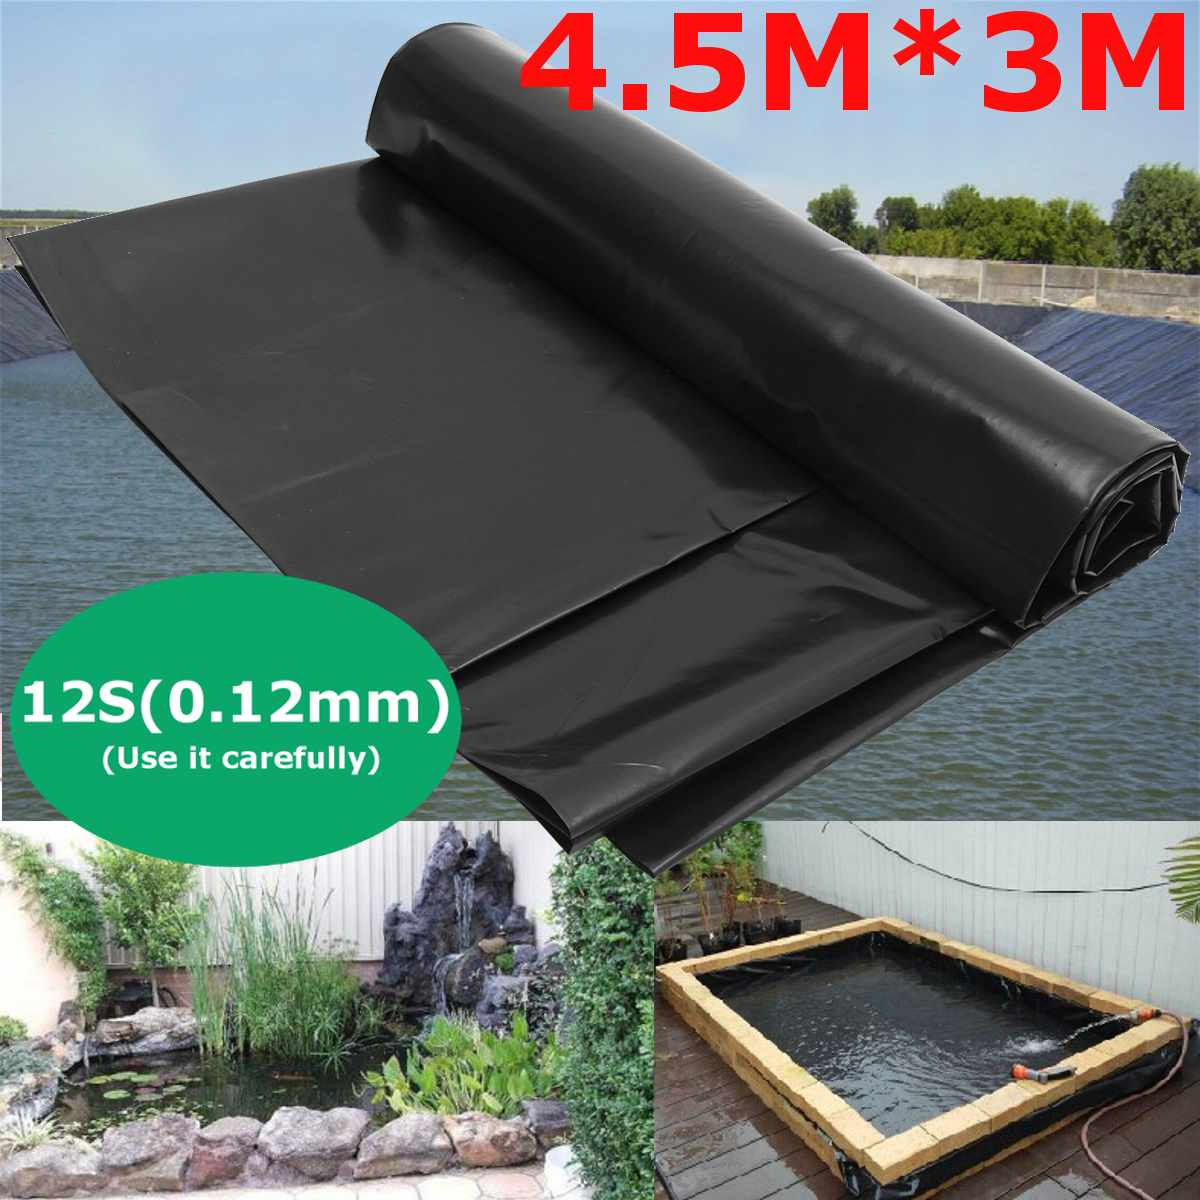 Fish-Pond Liner HDPE Garden-Pool-Reinforced Home Waterproof Cloth Black Landscaping Heavy